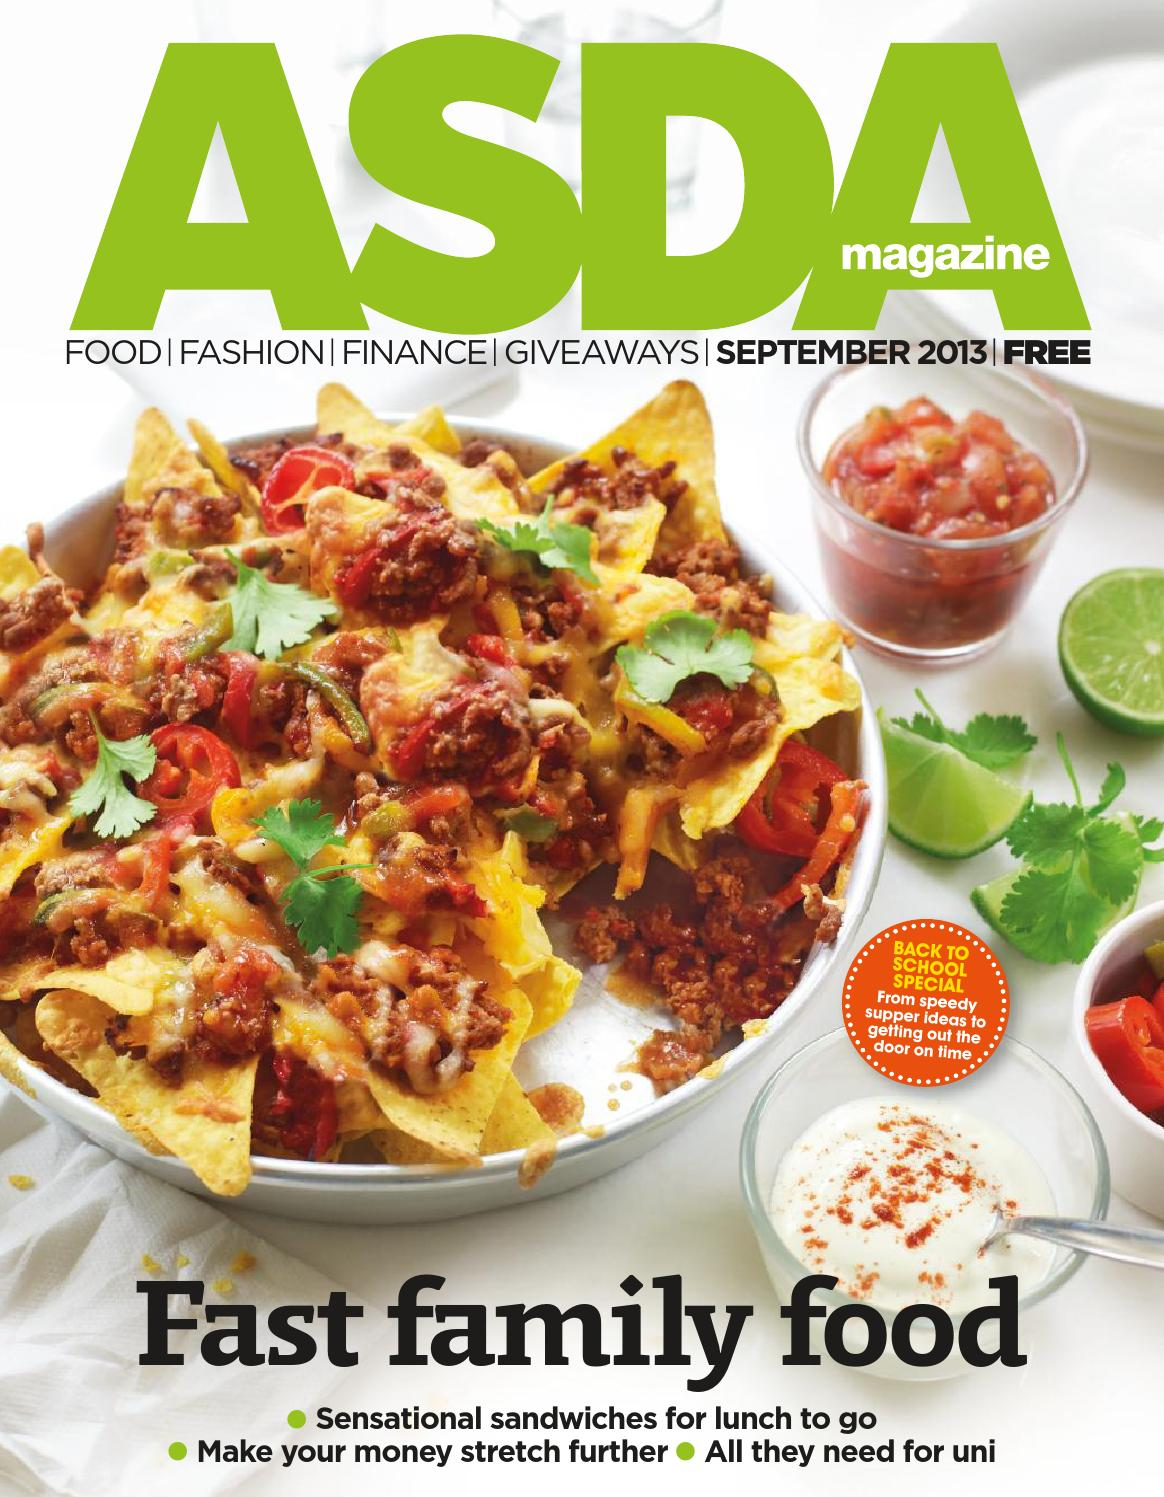 Asda Magazine September 2013 By Asda Issuu